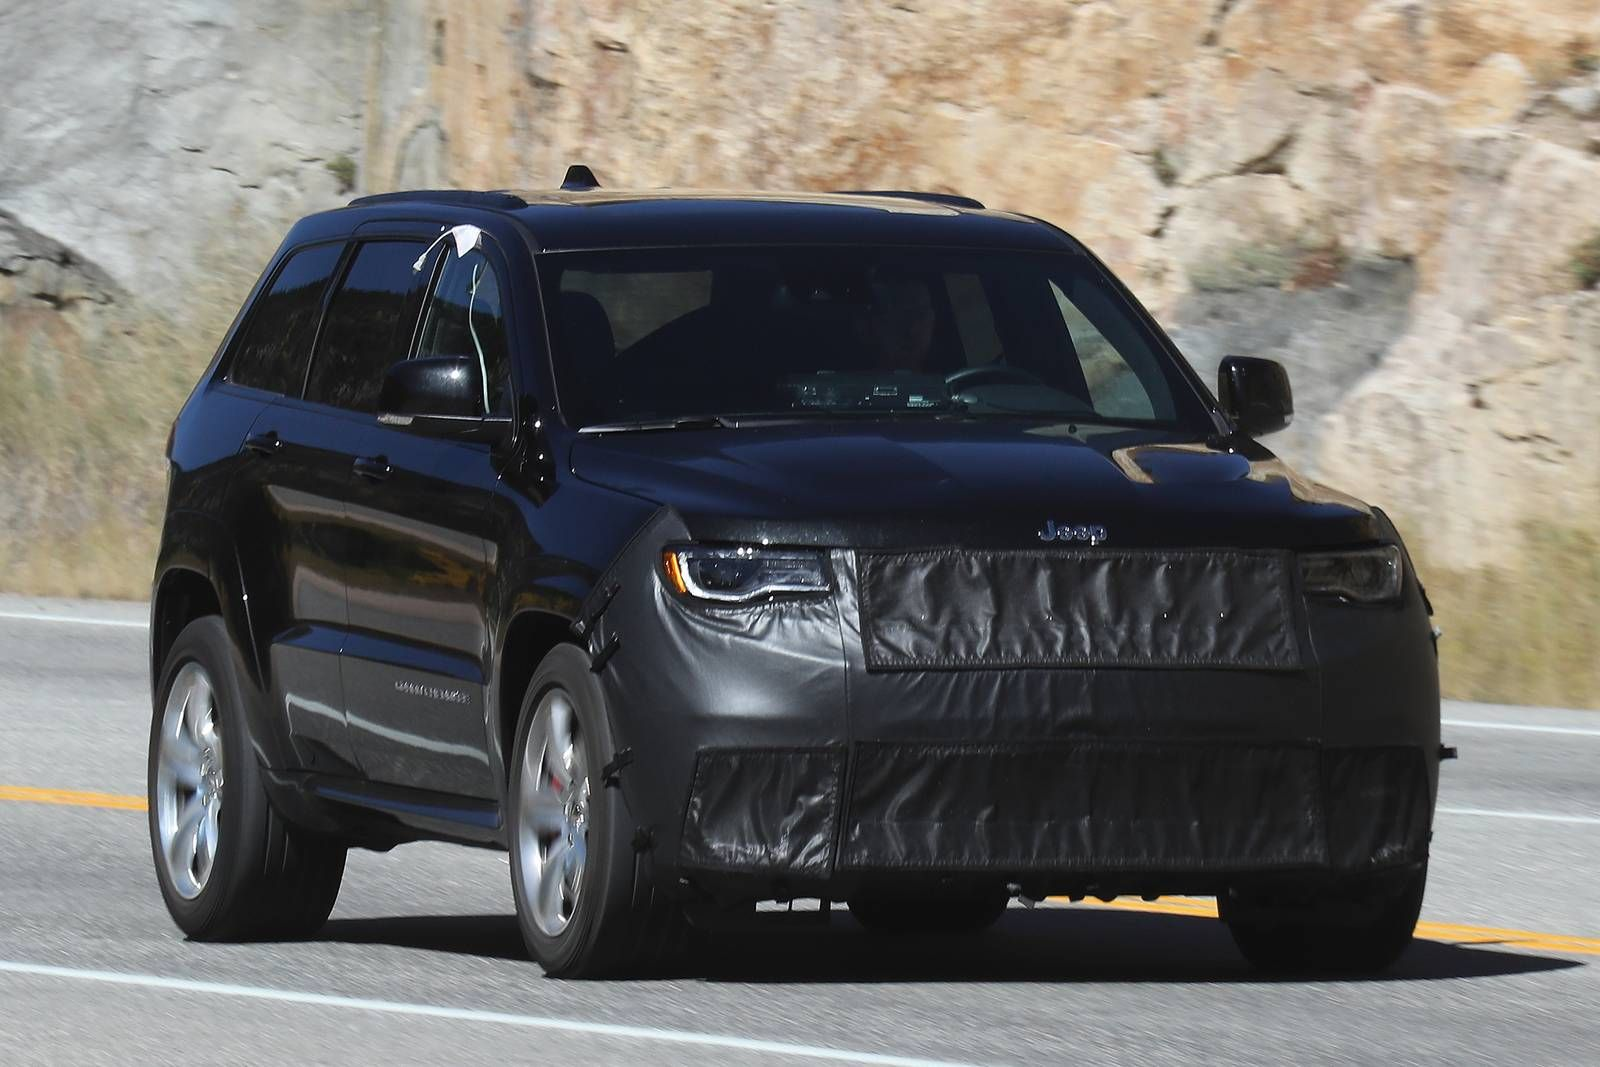 So Is This The Actual 2018 Jeep Grand Cherokee Srt Trackhawk With No Ram Air Hood